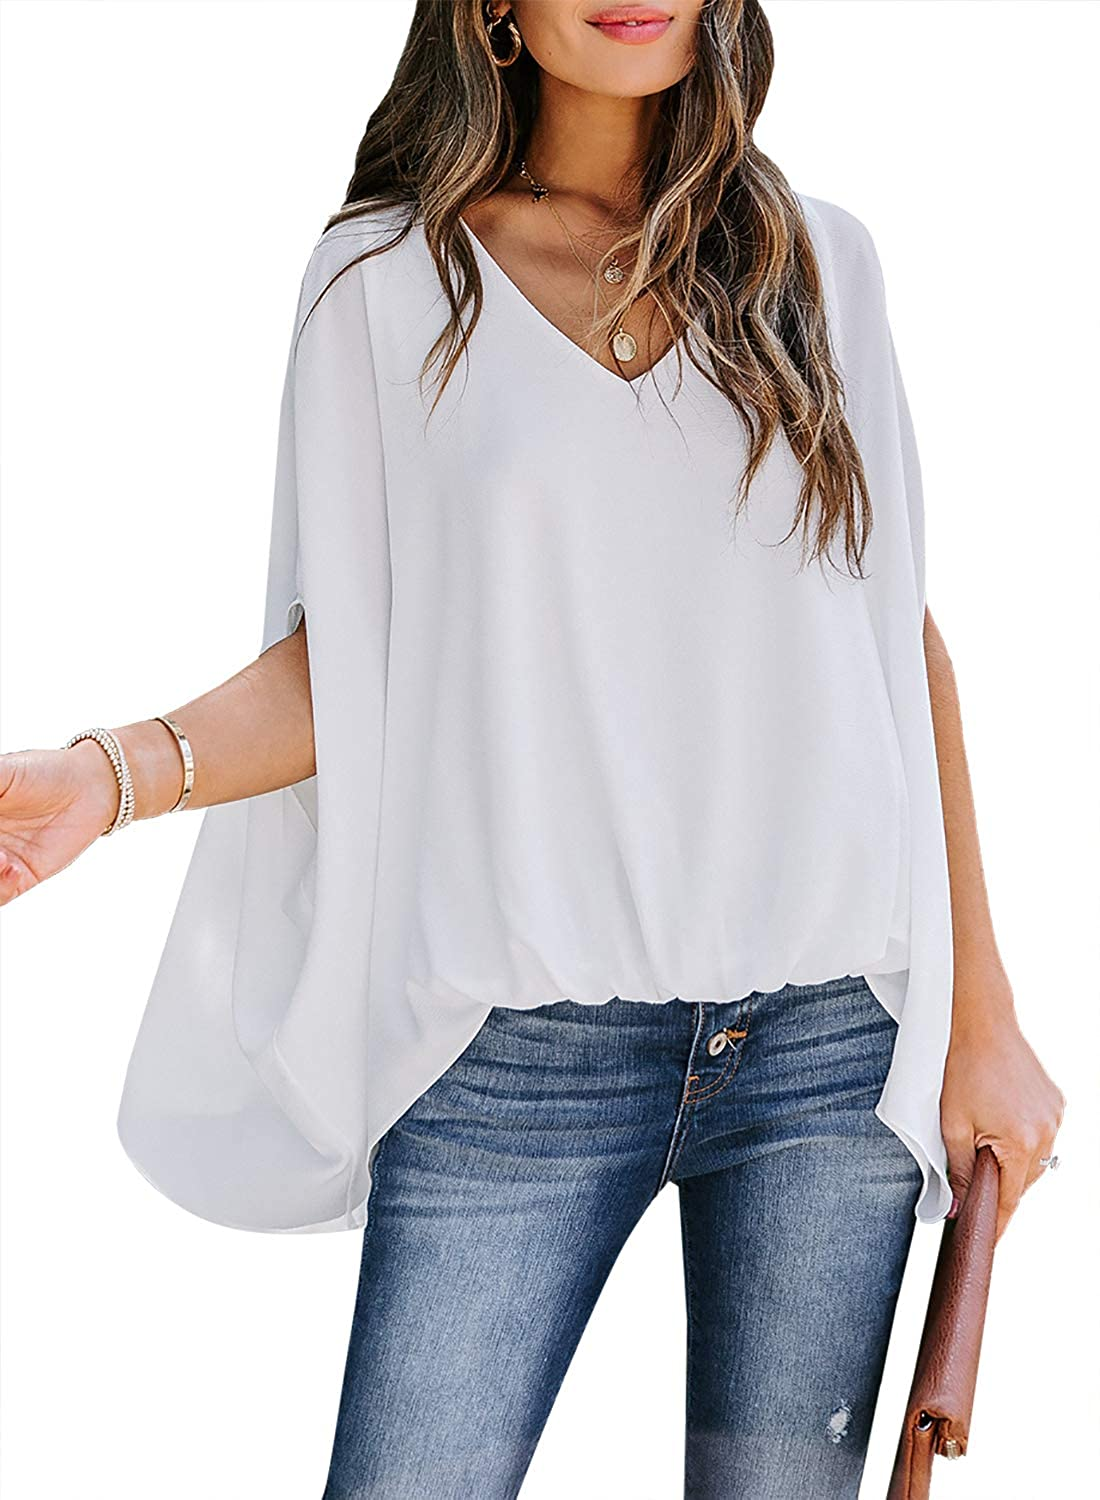 FIYOTE Womens Tops and Blouses Casual Summer Wrap Drape V Neck Shirts Blouses